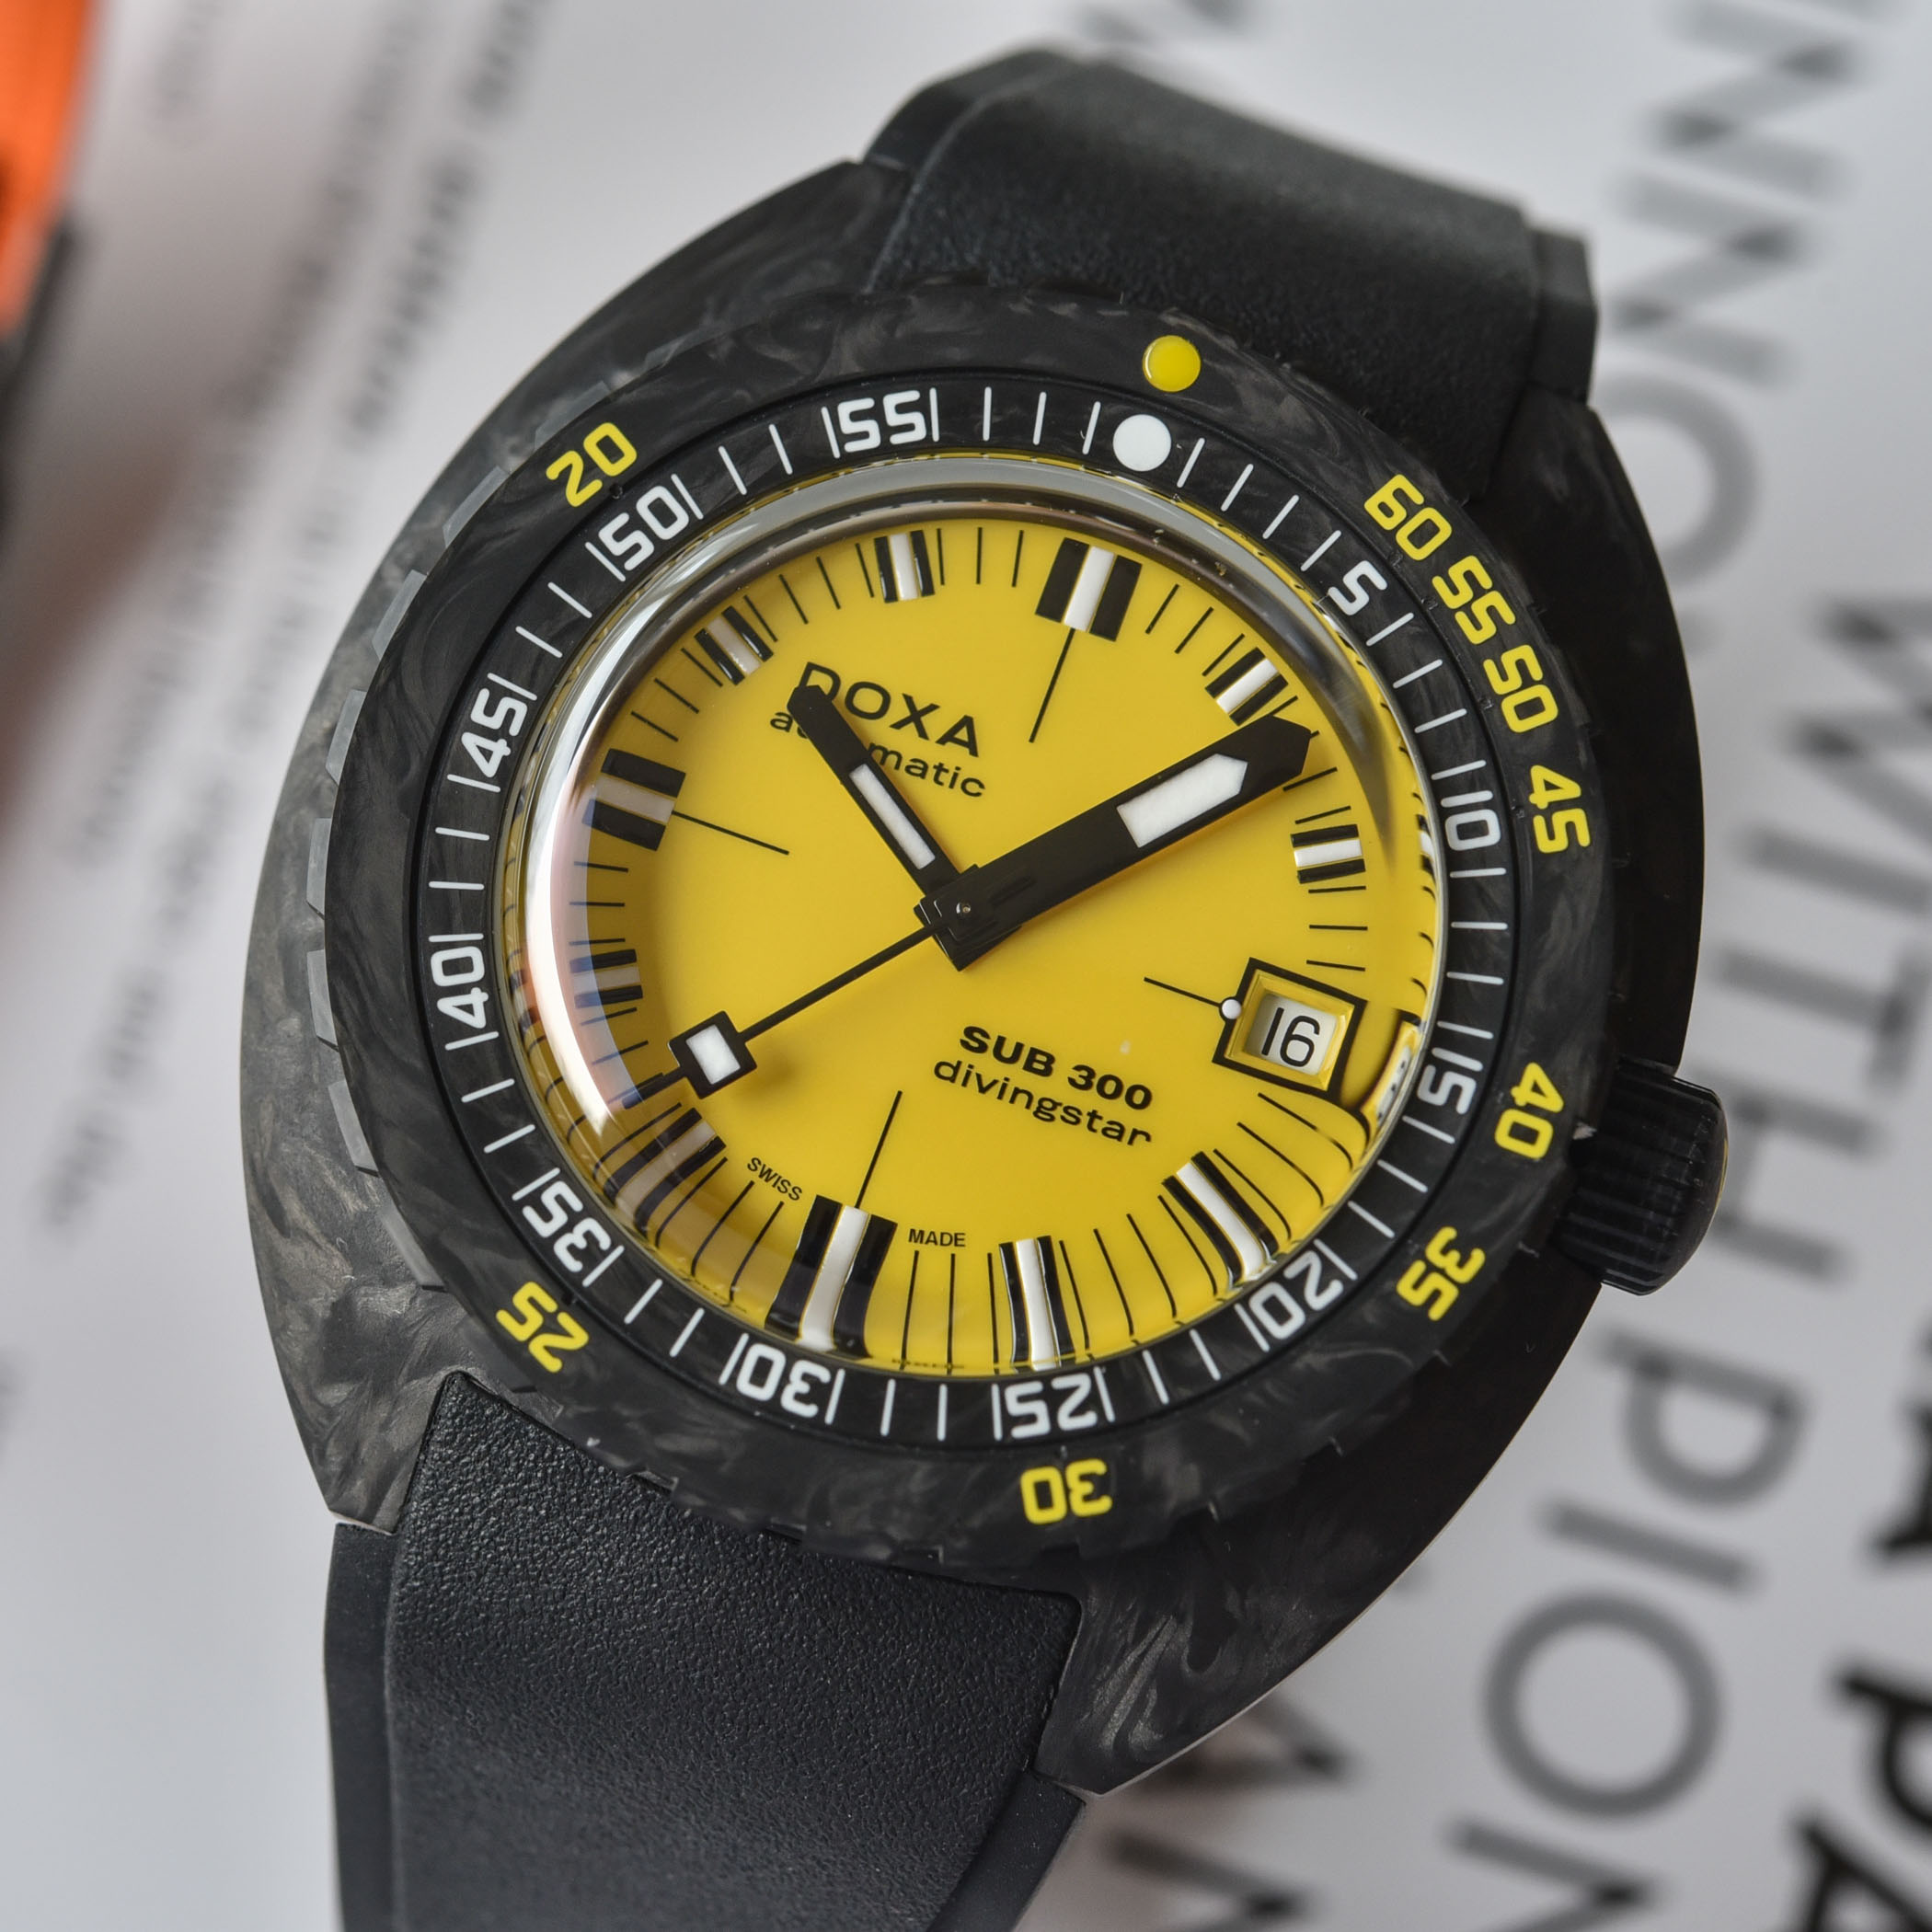 Doxa SUB 300 Carbon COSC Collection 2021